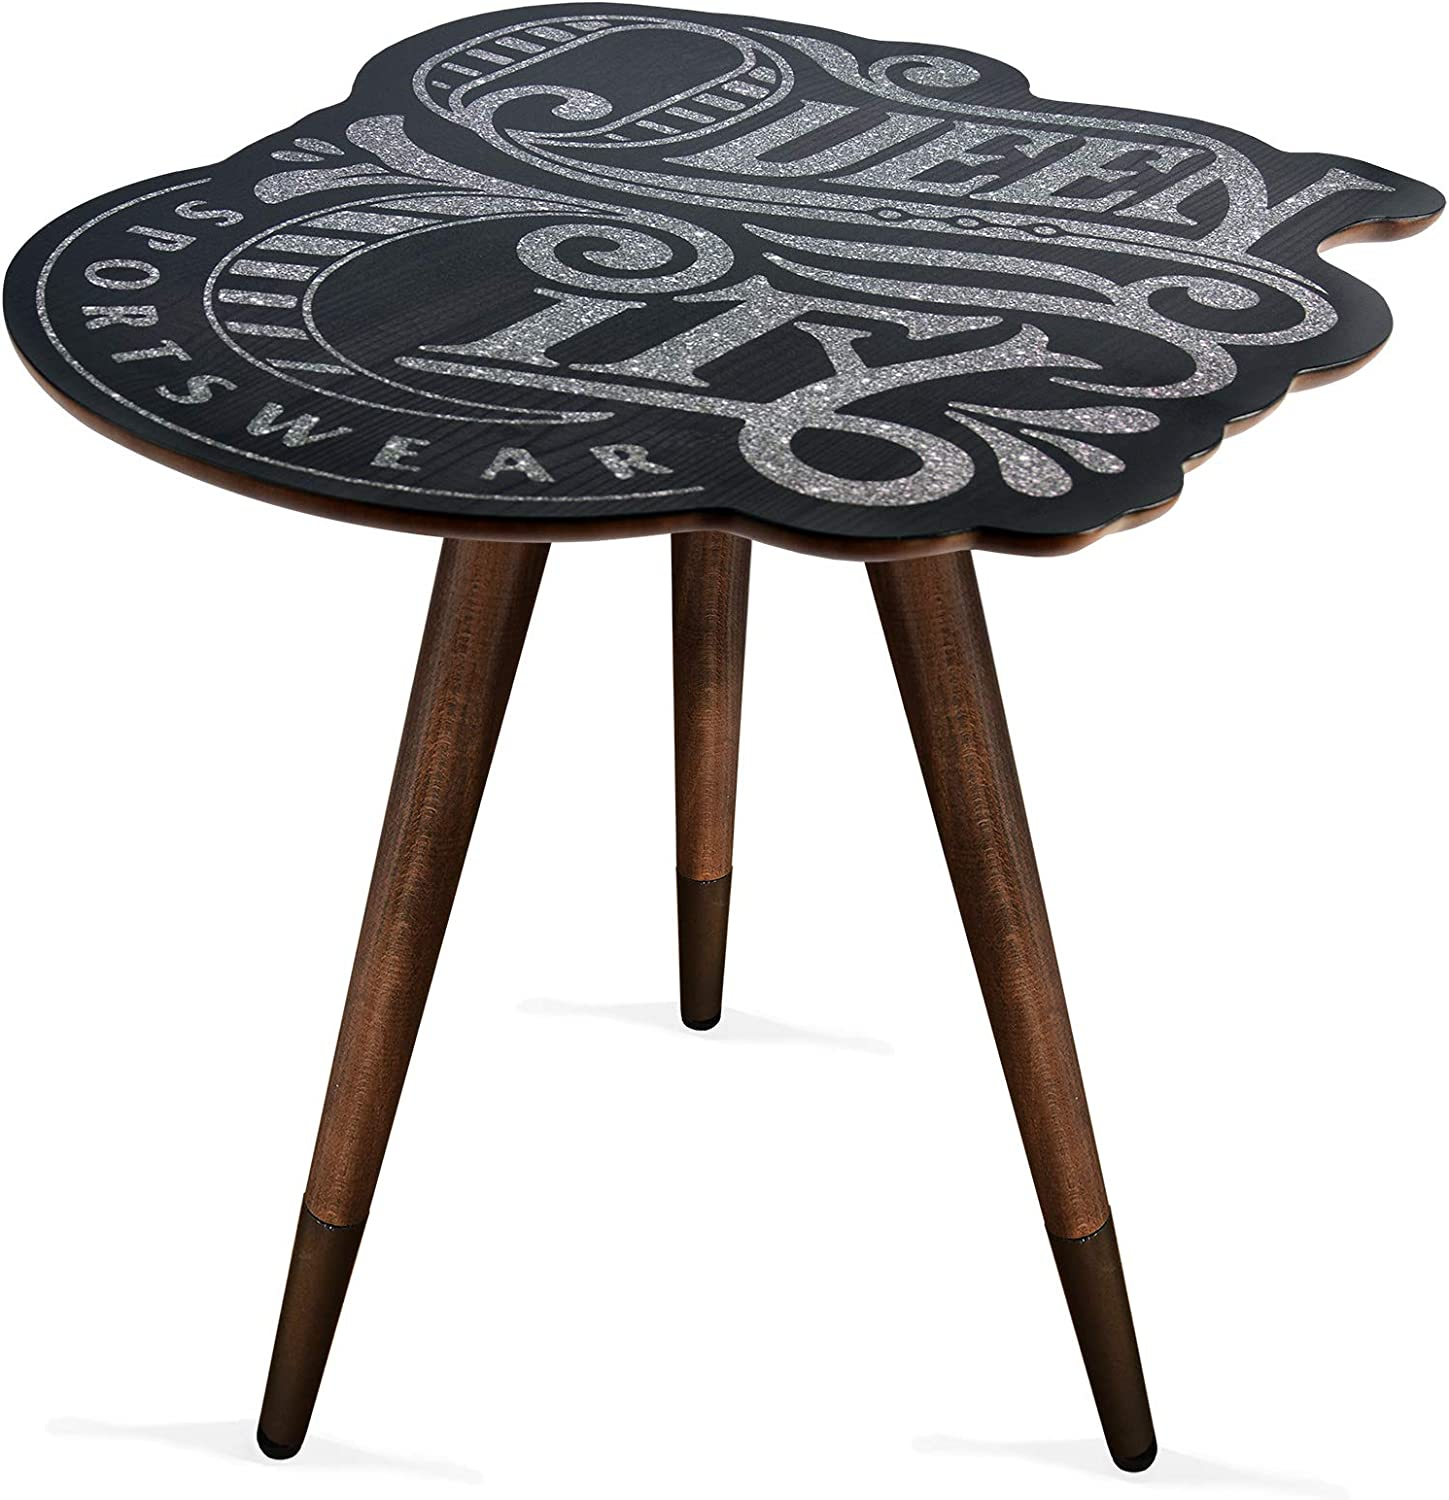 Queen City Print Vintage,Retro, Mid-Century Modern Design Wooden Coffee Table, Cocktail Table for Living Room, Bedroom or Home Office